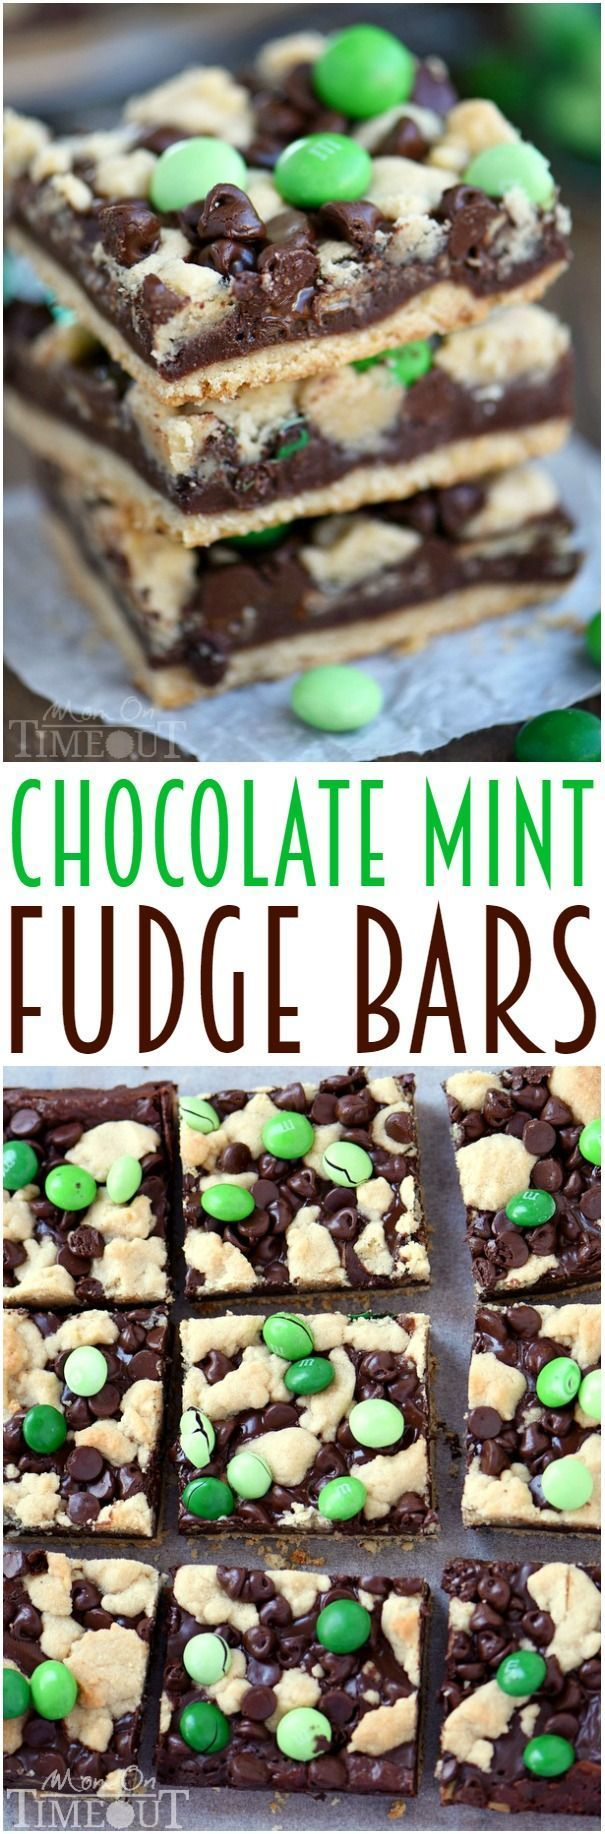 Indulge in these outrageously decadent Chocolate Mint Fudge Crumb Bars for the ultimate chocolate and mint treat! | http://MomOnTimeout.com | #recipe #dessert #chocolate #mint